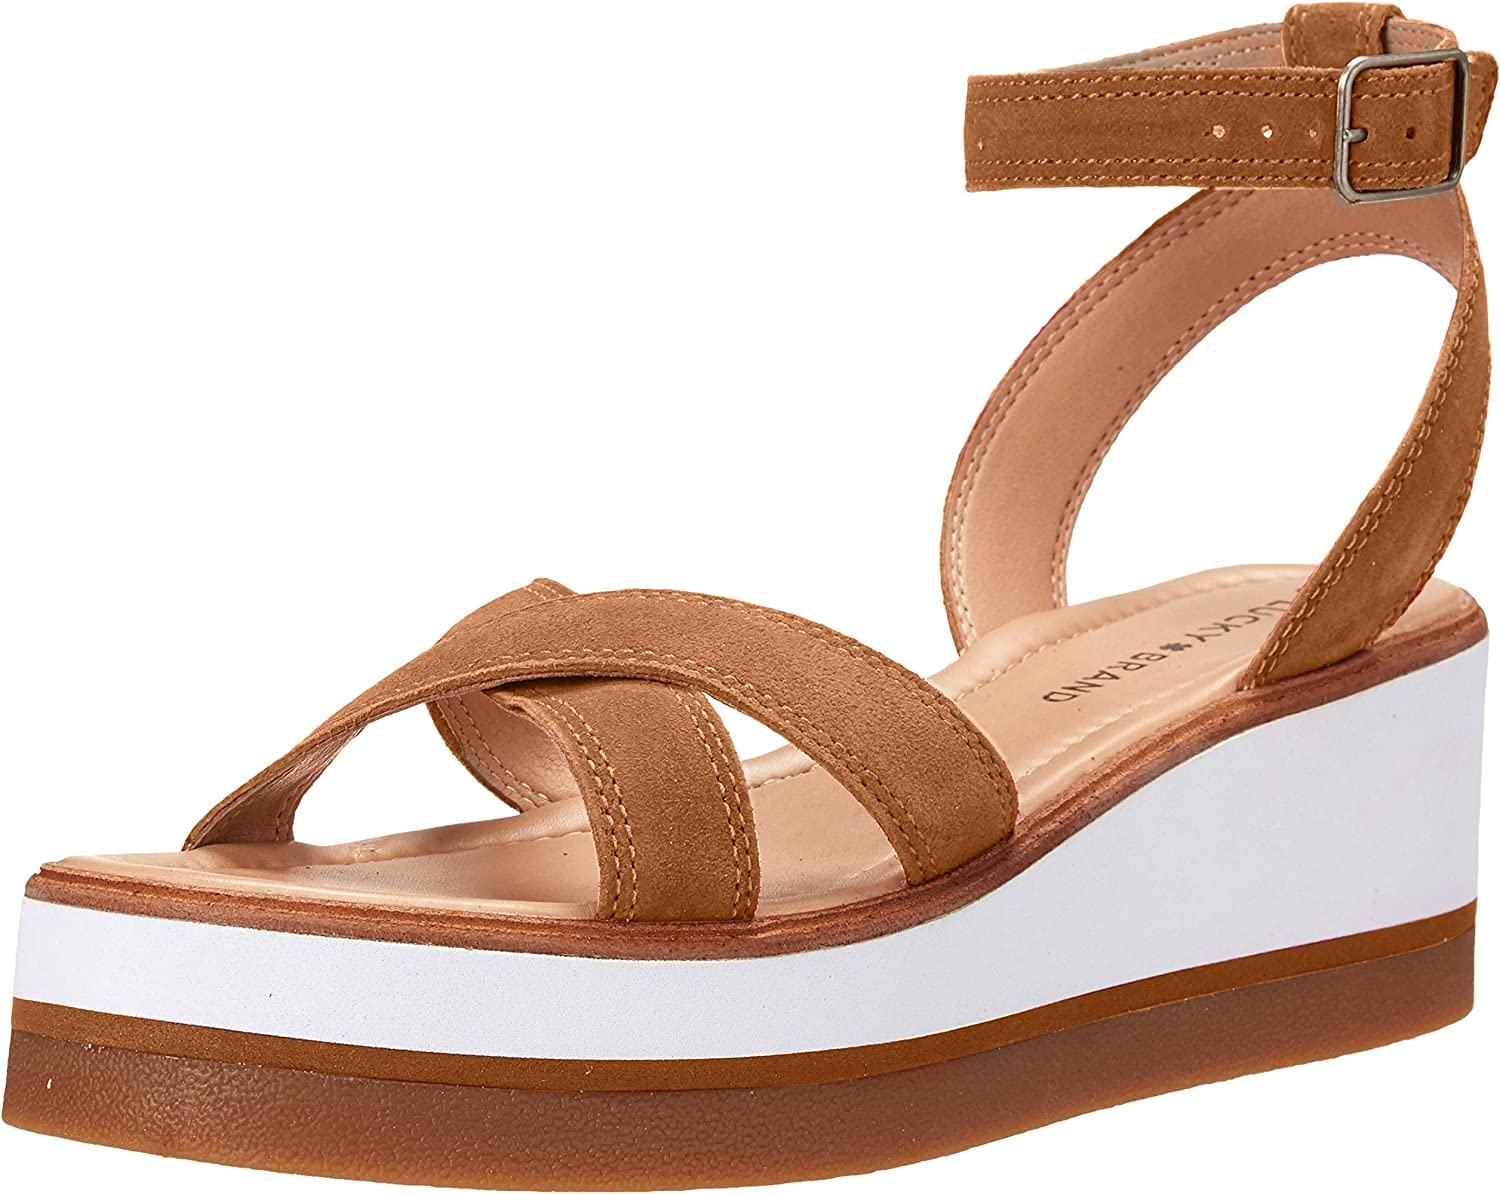 Lucky NEW New color before selling ☆ Brand Women's Sandal Wedge Tarhi